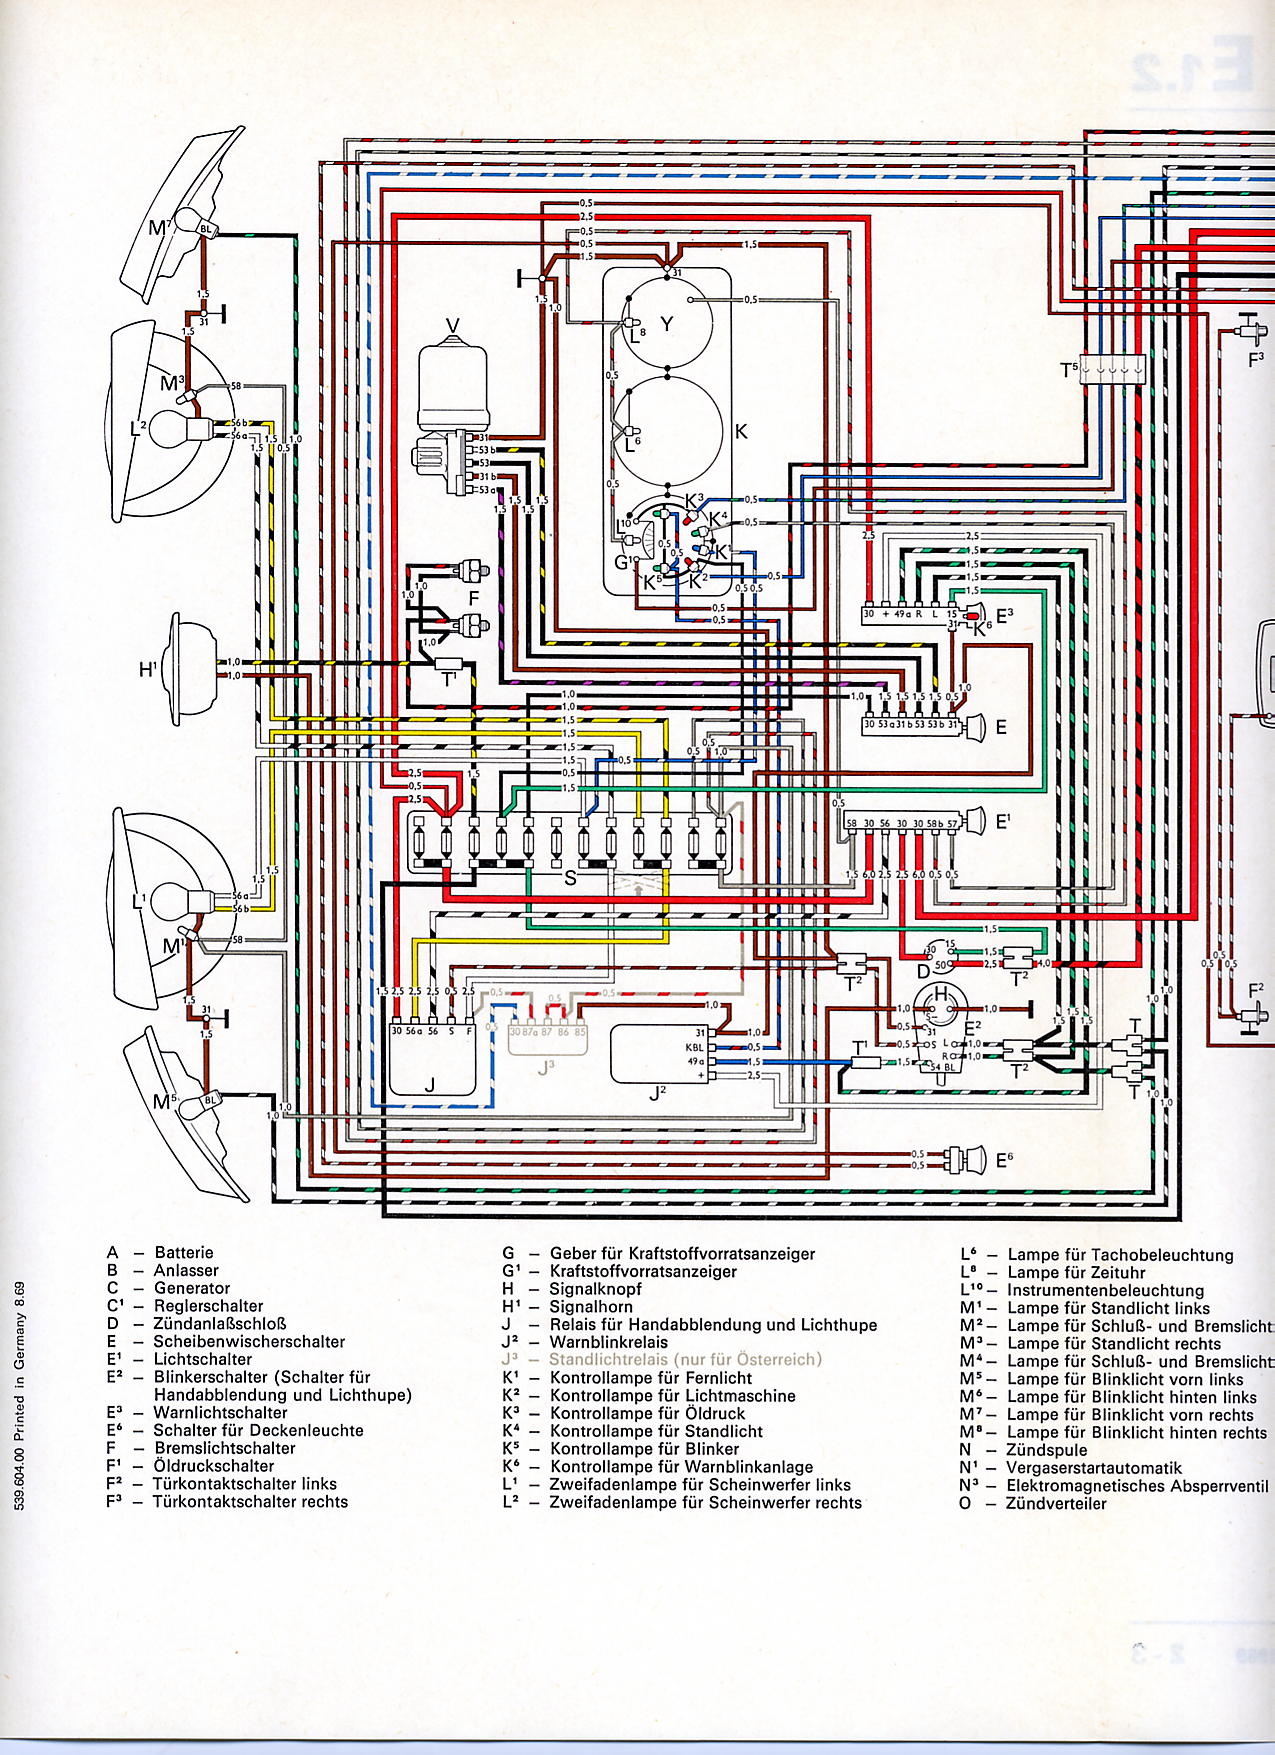 1969 Chevy Headlight Switch Wiring Library 00 Dakota Diagram Vw Diagrams Rh Volkspower Nl 1964 72